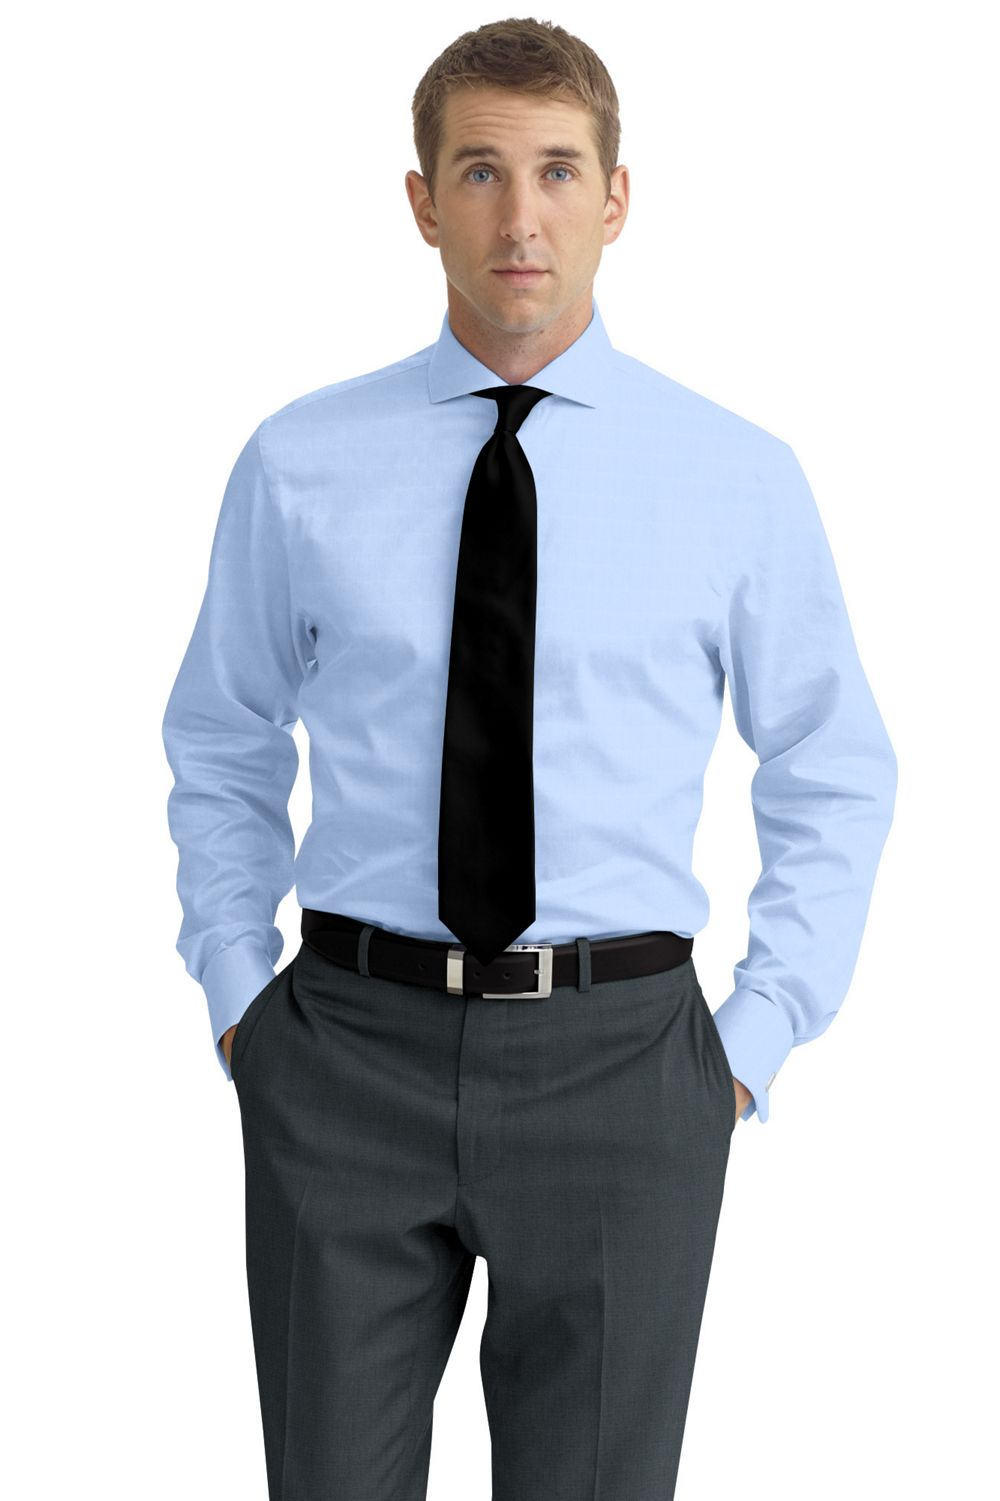 The Crisp Light Blue Dress Shirt Christopher Cuozzo